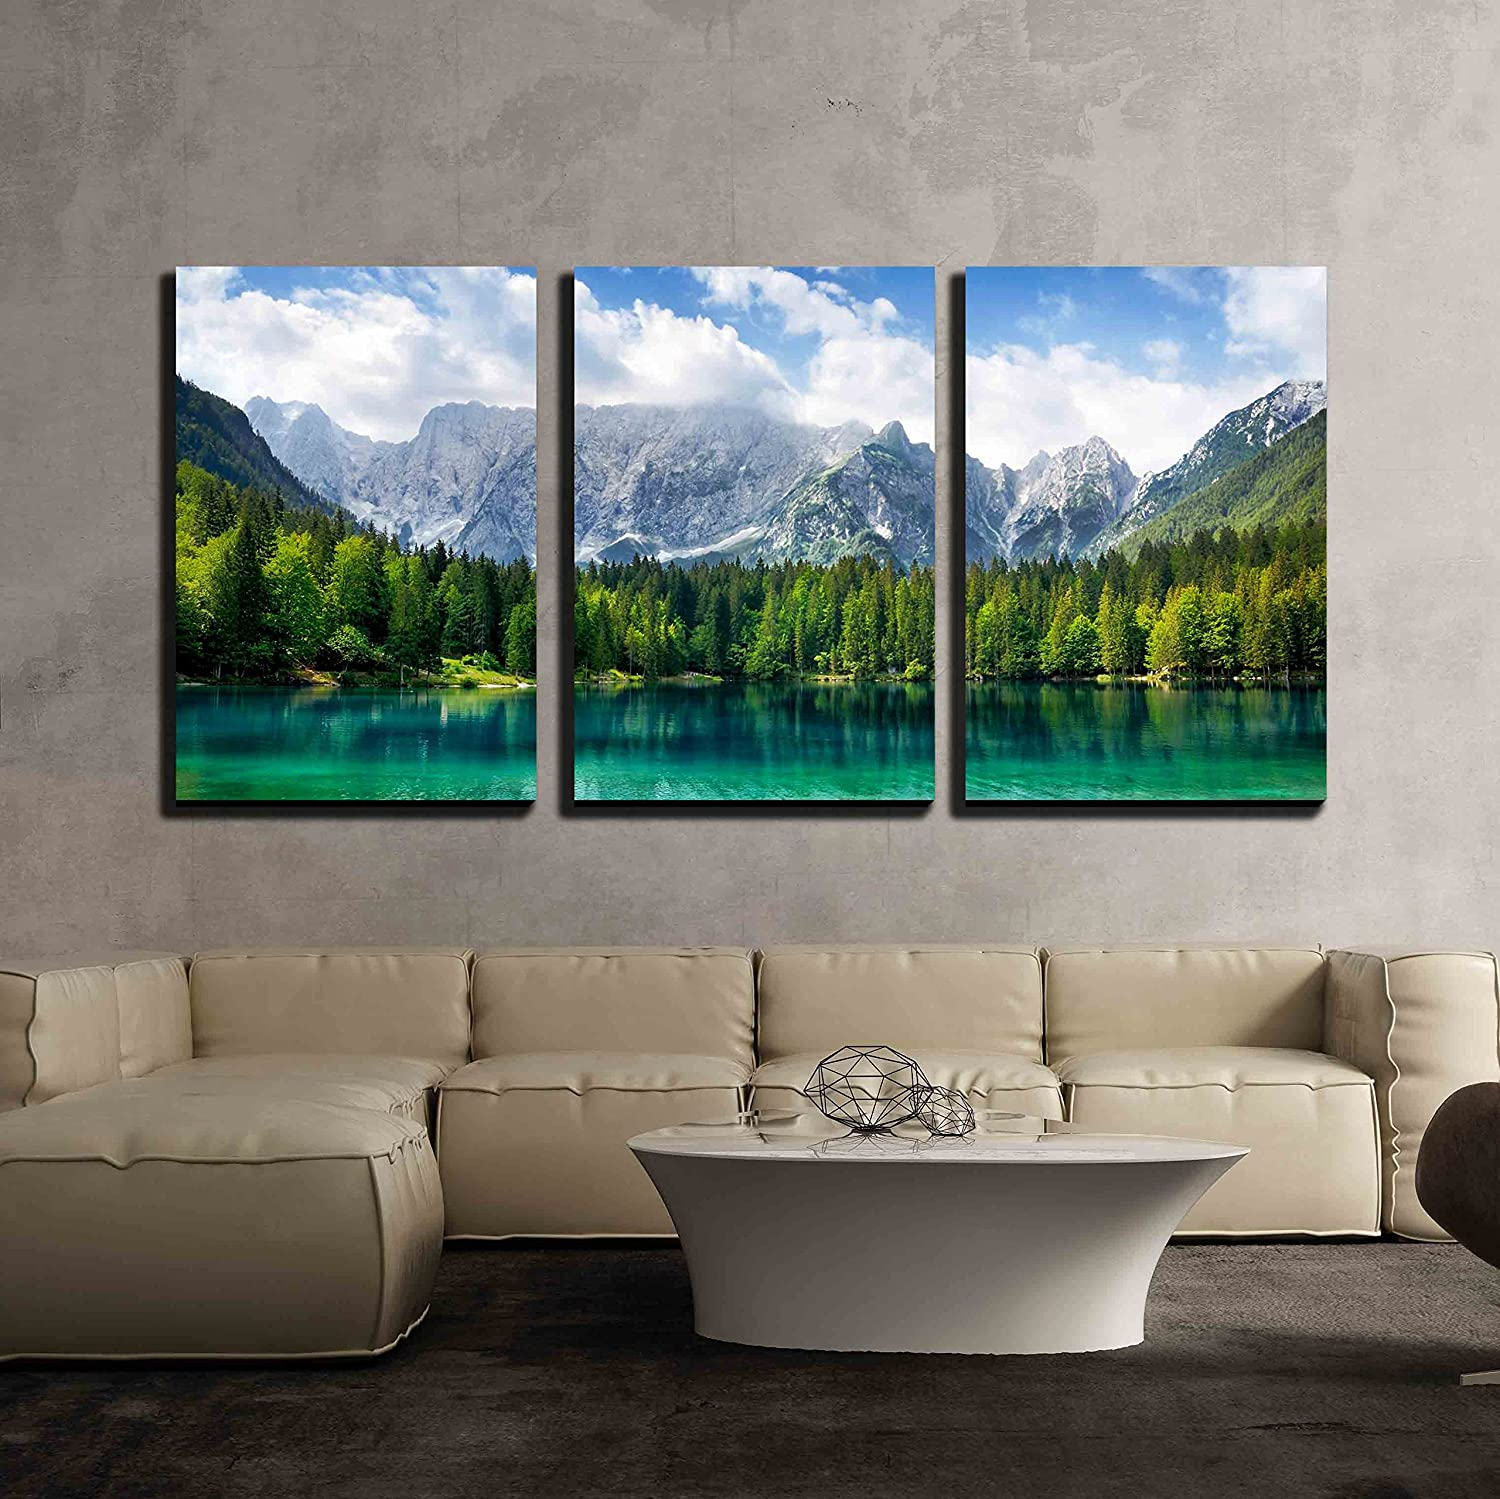 "wall26 - 3 Piece Canvas Wall Art - Beautiful Landscape with Turquoise Lake, Forest and Mountains - Modern Home Decor Stretched and Framed Ready to Hang - 24""x36""x3 Panels"